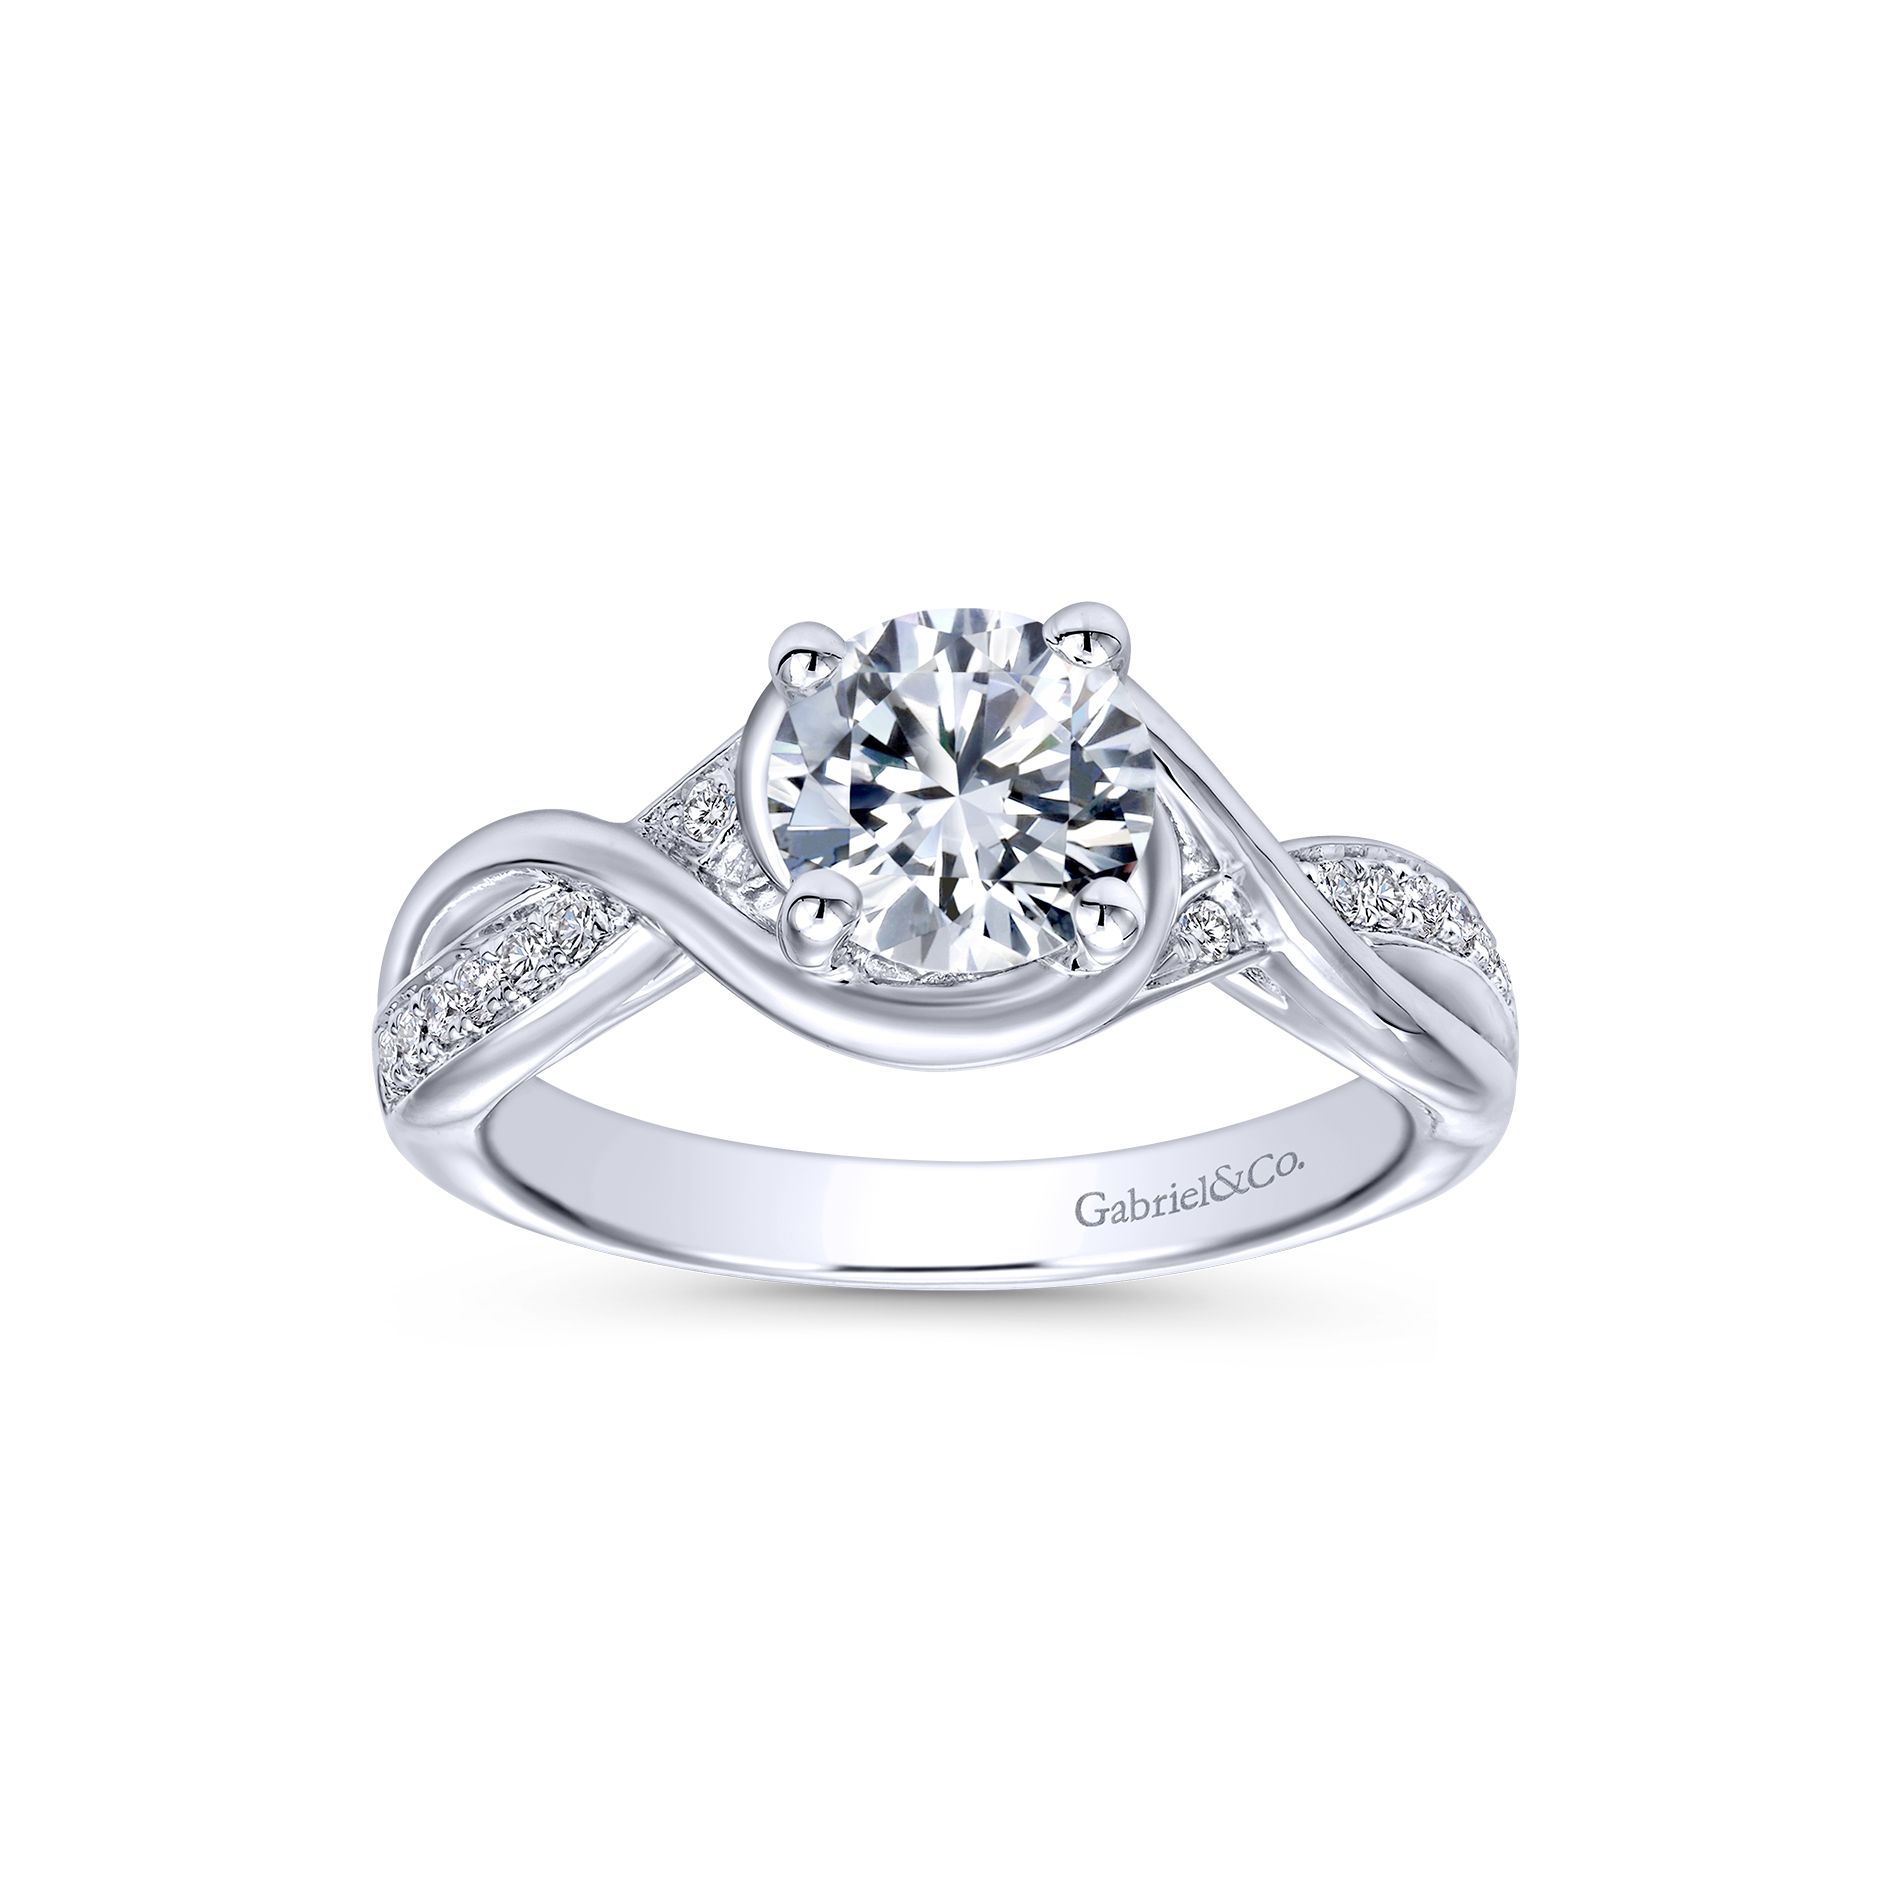 Engagement Rings - WHITE GOLD ROUND TWISTED DIAMOND ENGAGEMENT RING - image #5